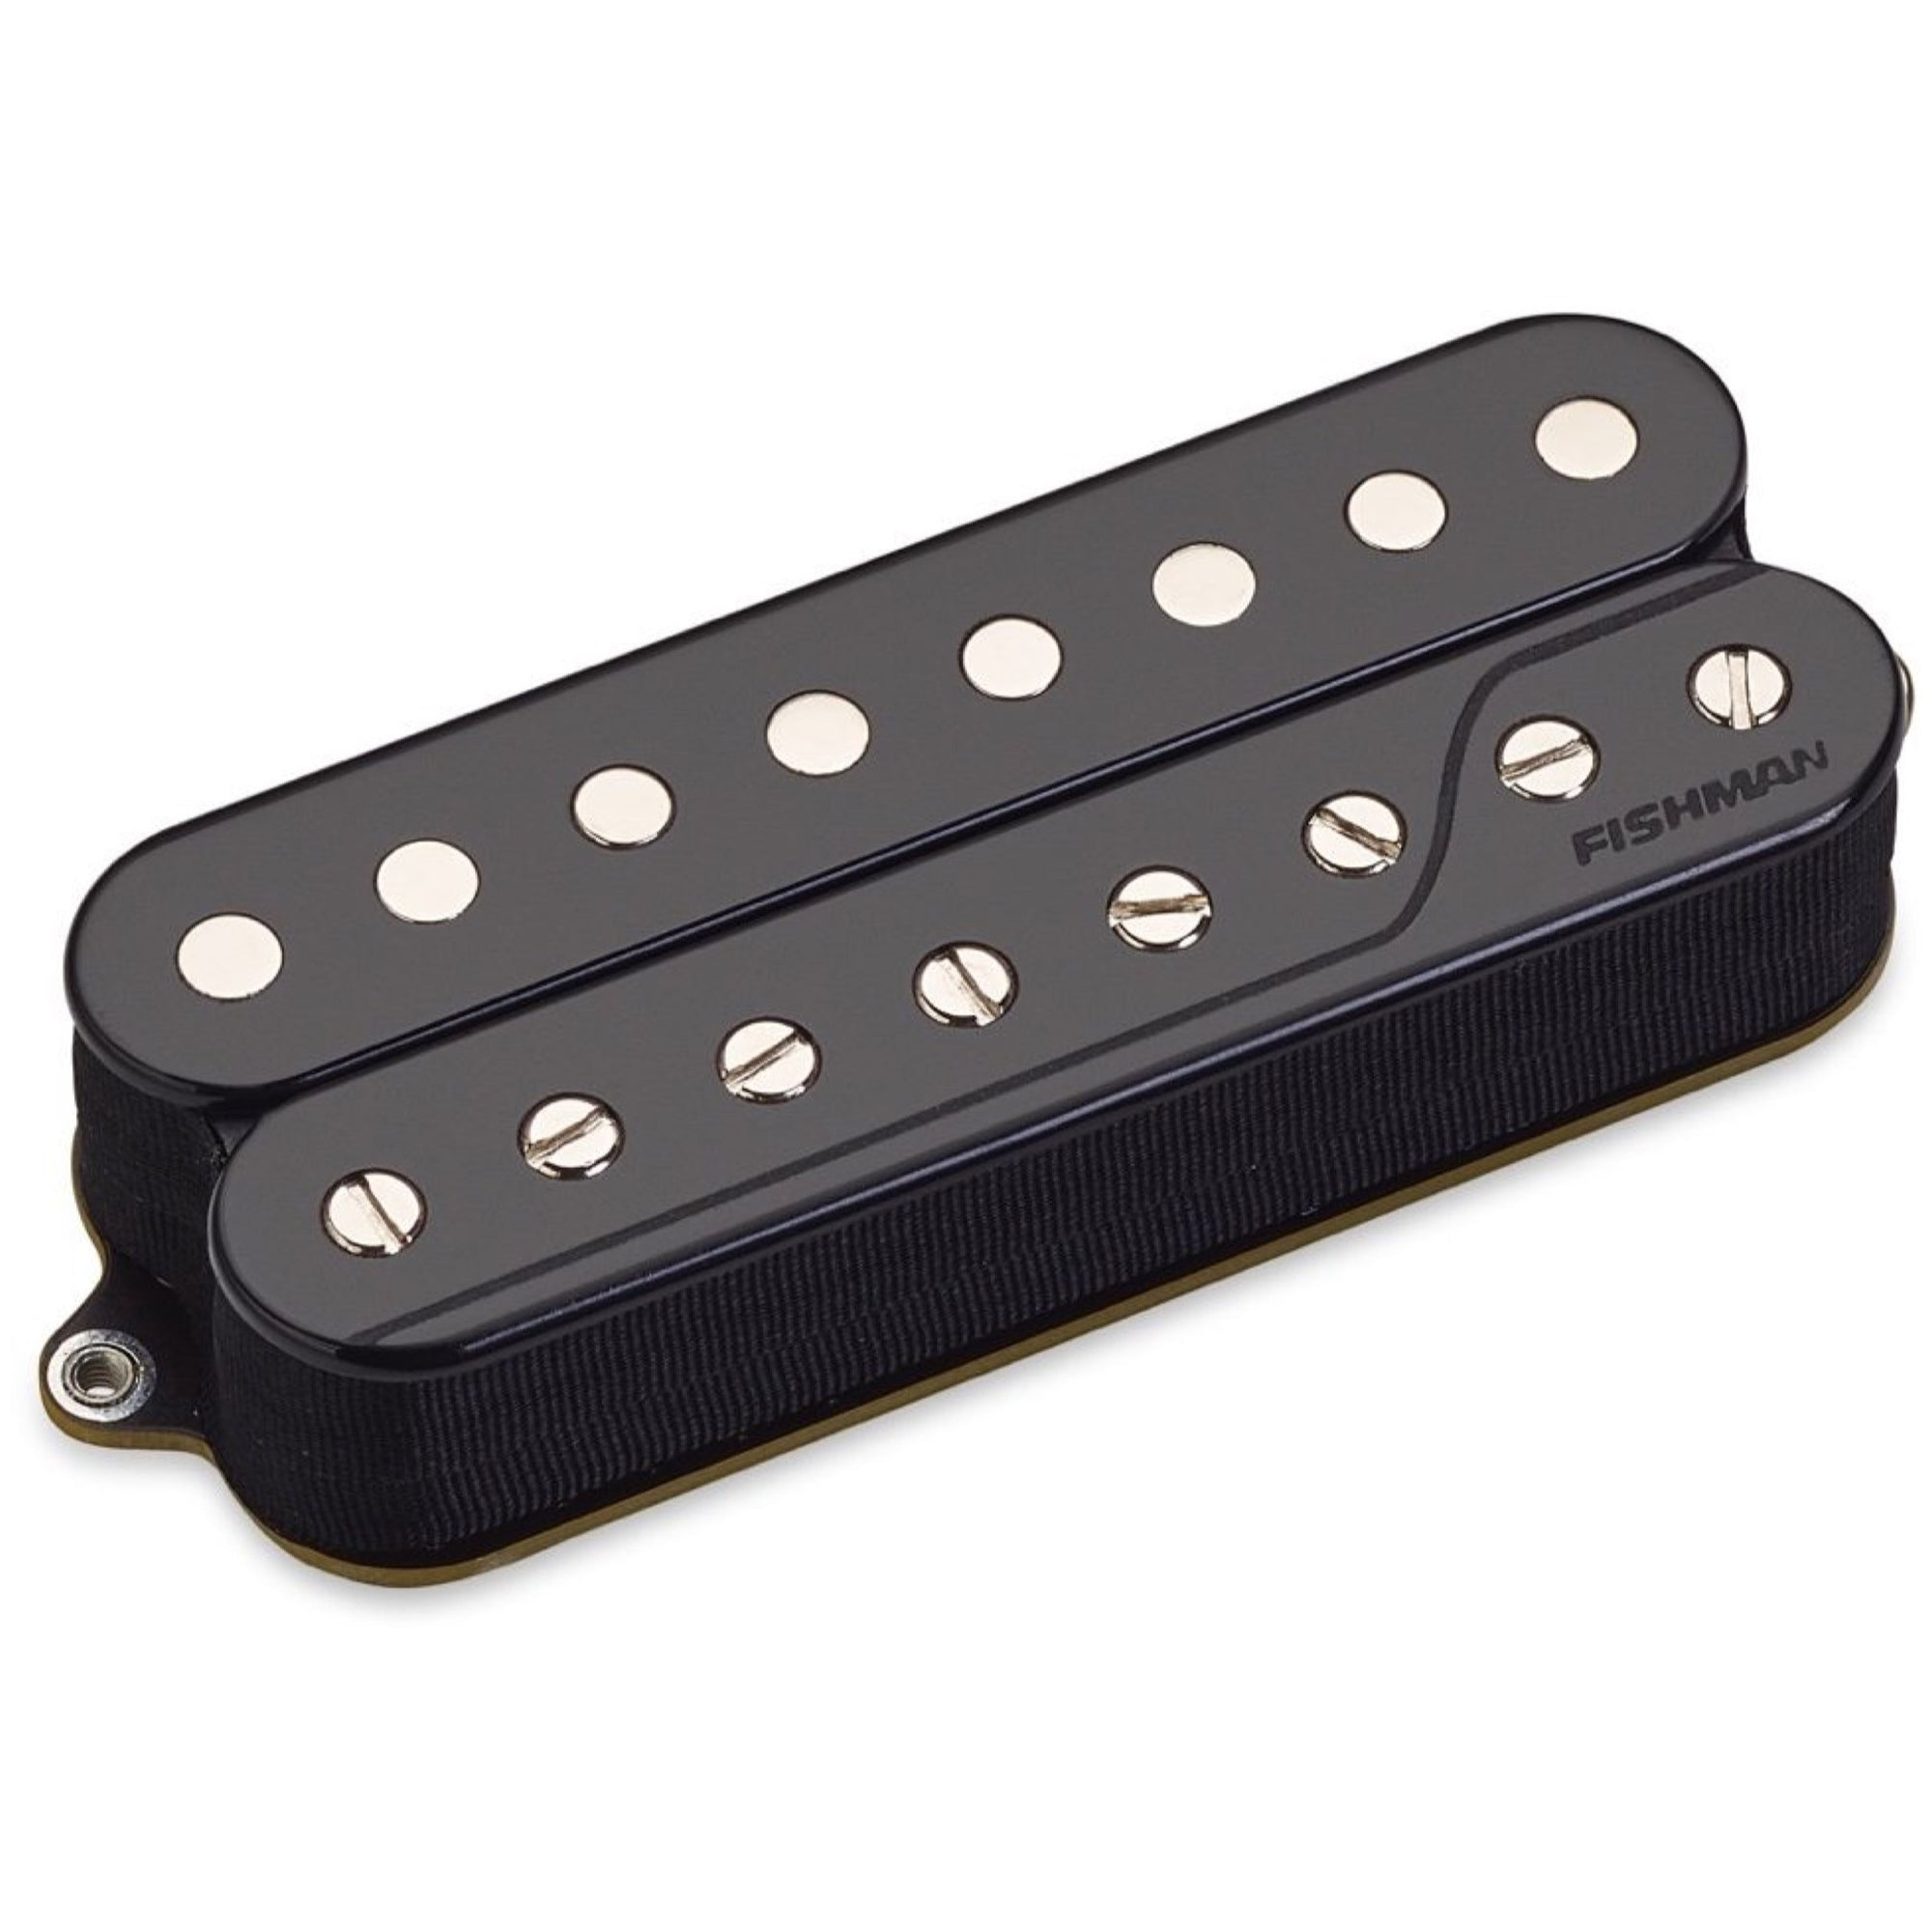 Fishman Open Core Fluence Classic Humbucker 8-String Pickup, Black, Set